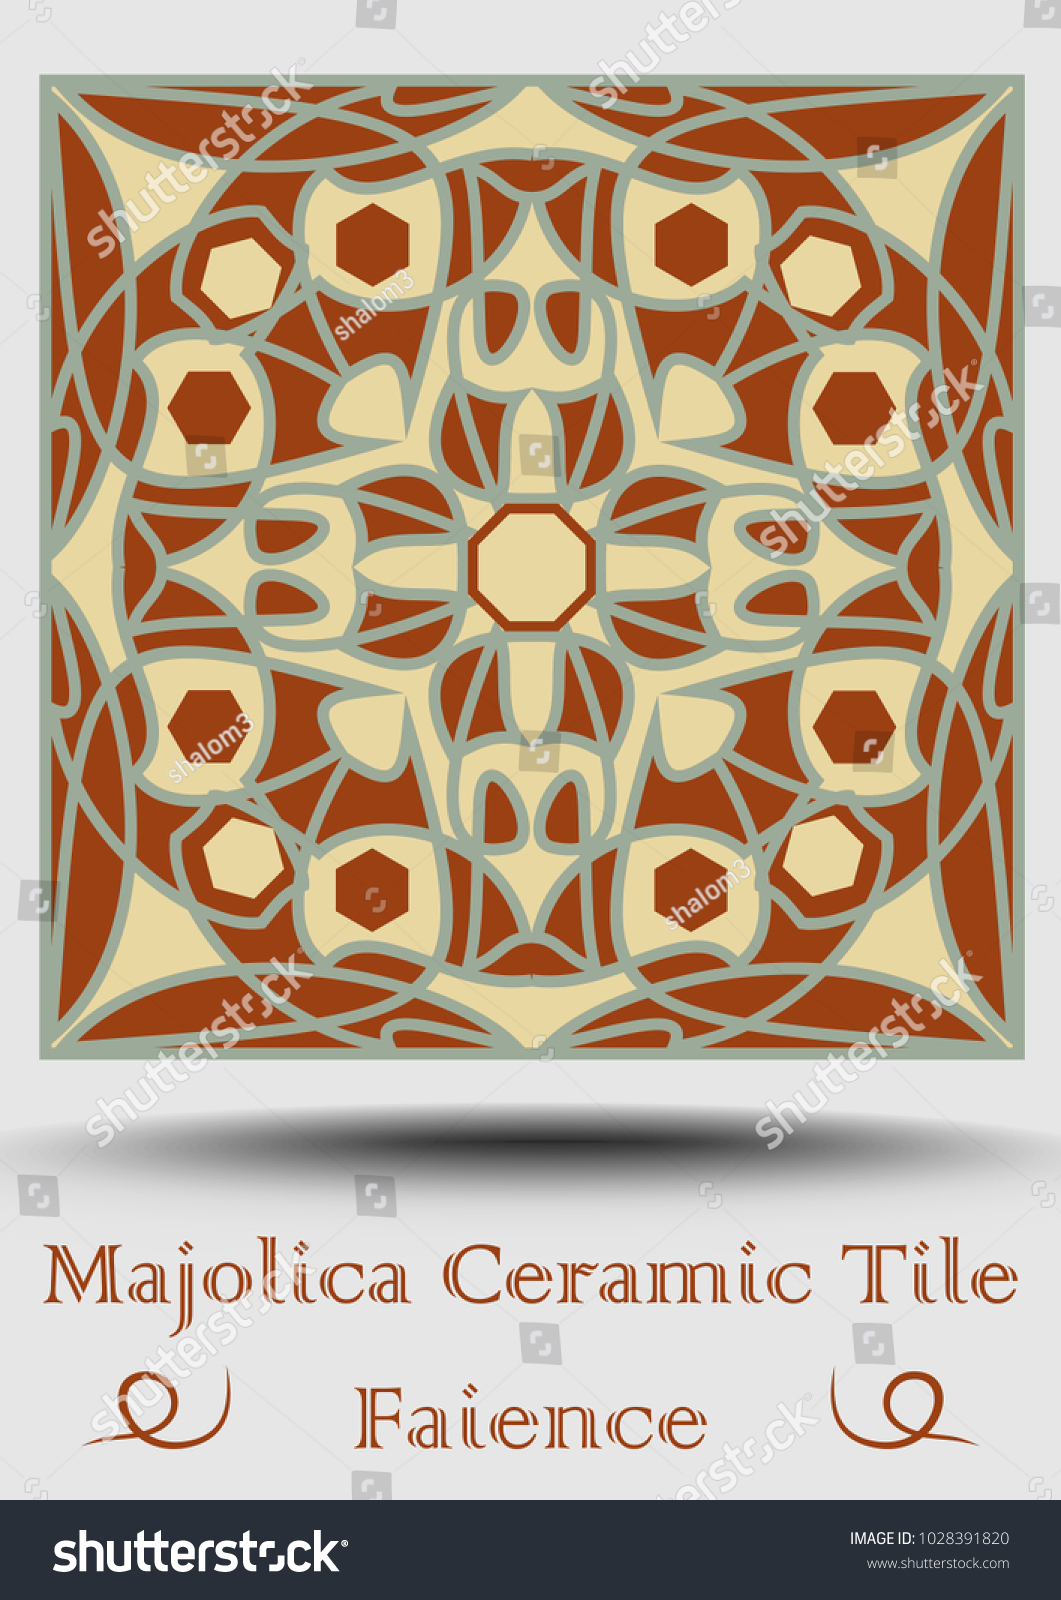 Faience tile decorative ceramic tile beige stock vector 1028391820 faience tile decorative ceramic tile in beige olive green and red terracotta vintage dailygadgetfo Images